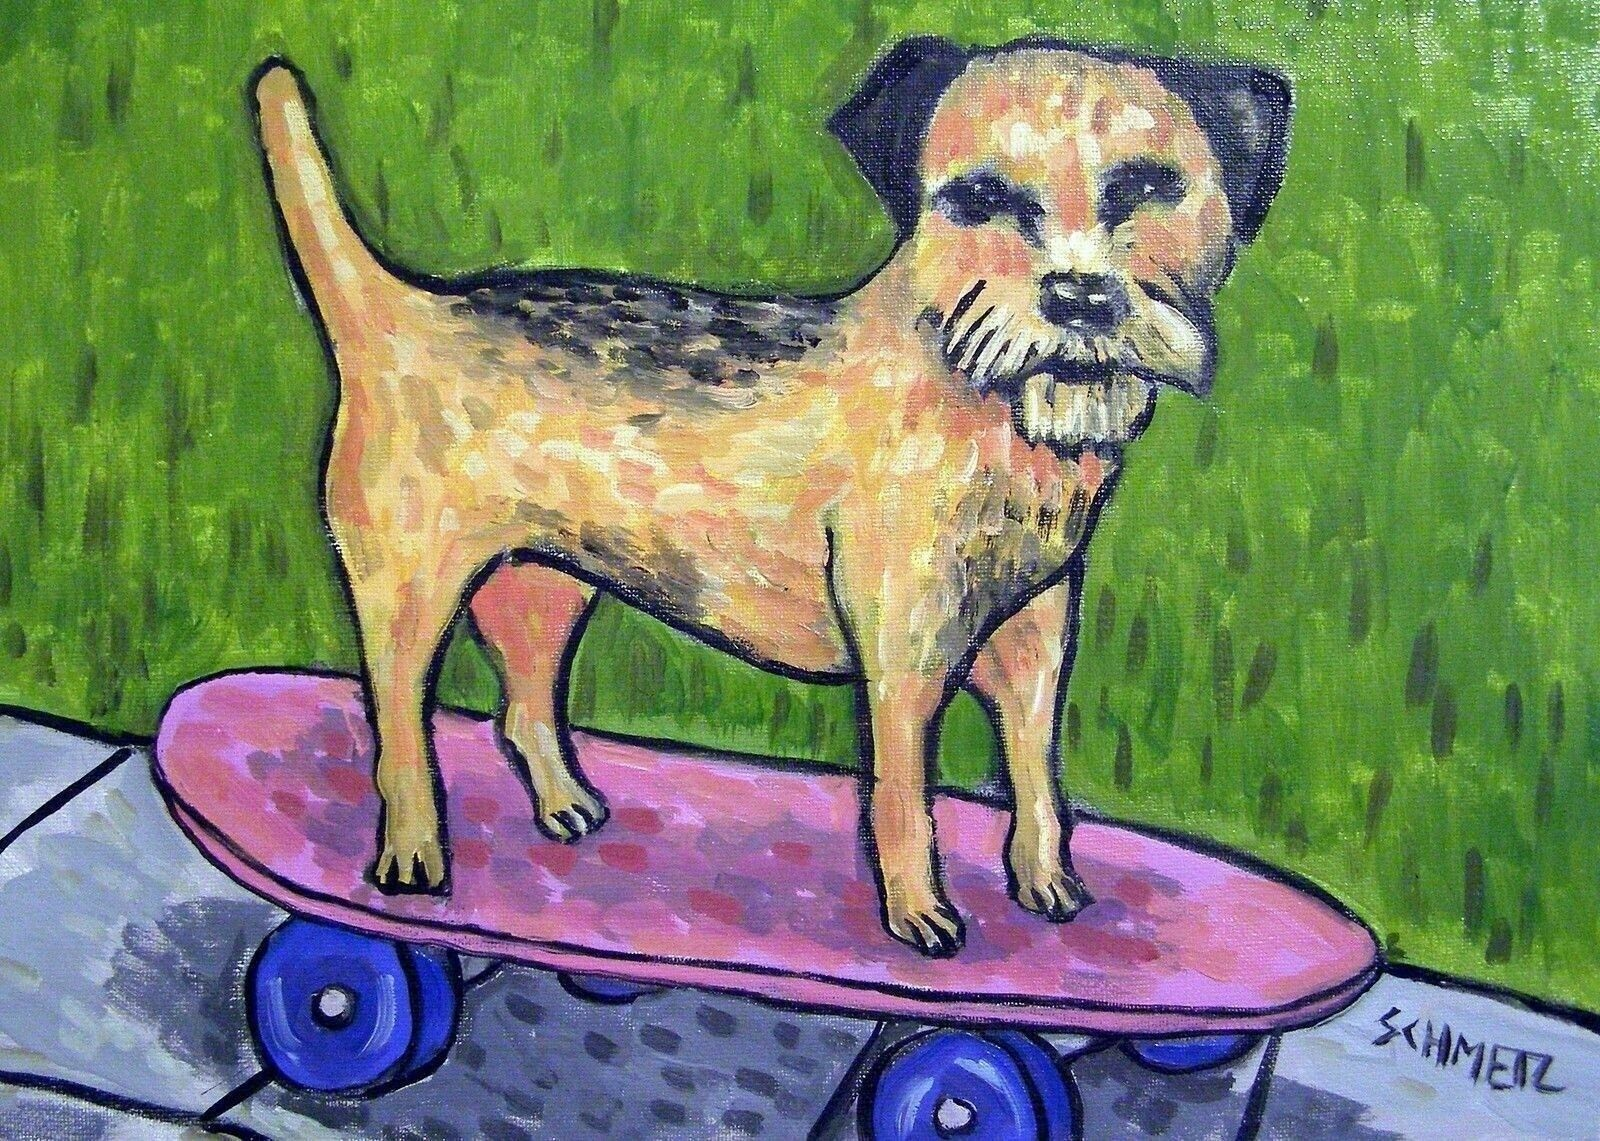 Norfolk terrier dog skateboarding  dog art print 13x19 glossy print